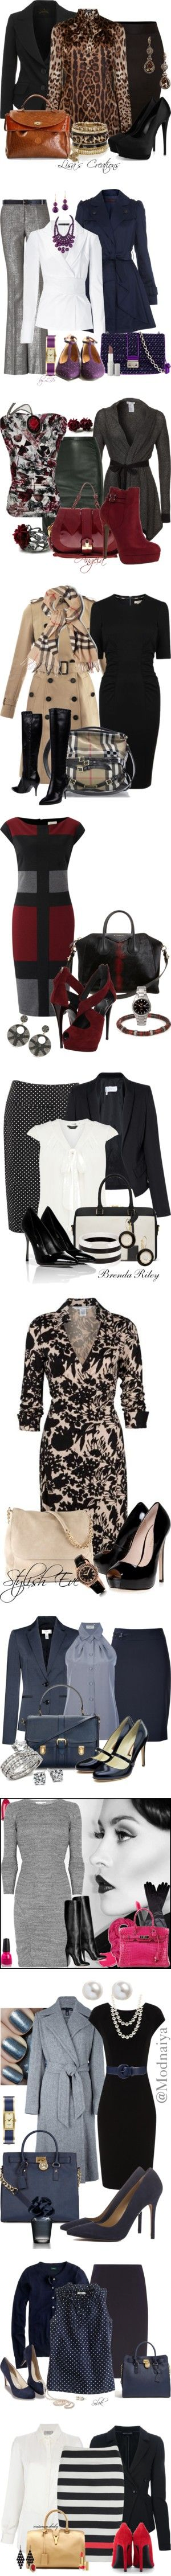 """Work Outfits - Winter"" by greeneyes44 ❤ liked on Polyvore"